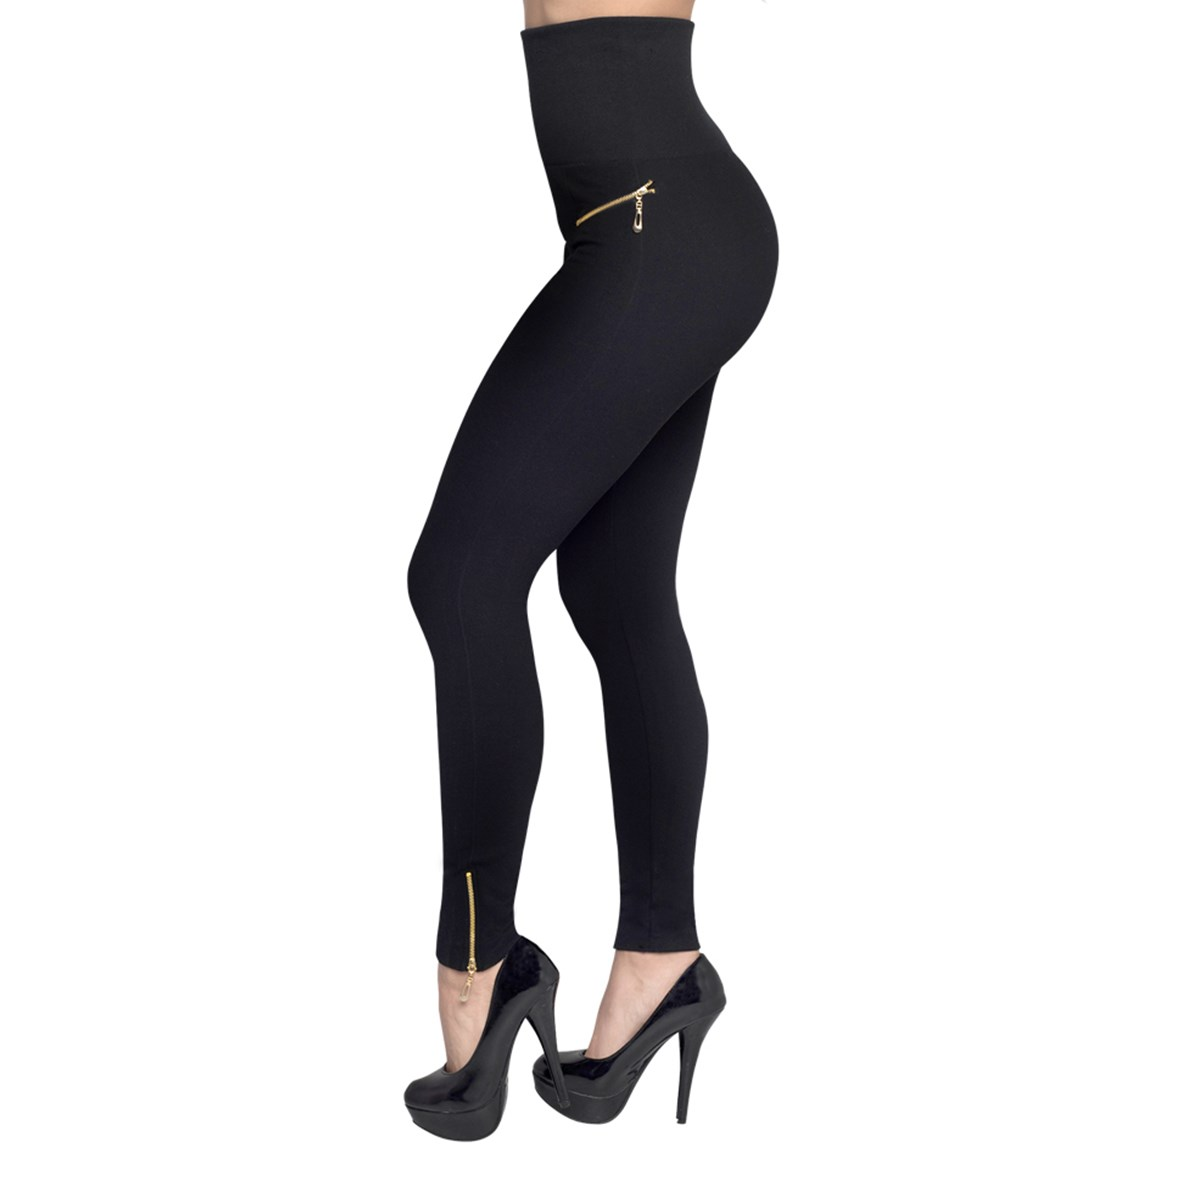 1200x1200 Hollywood Pants Slimming, Glamorous Leggings That Shape Your Waist